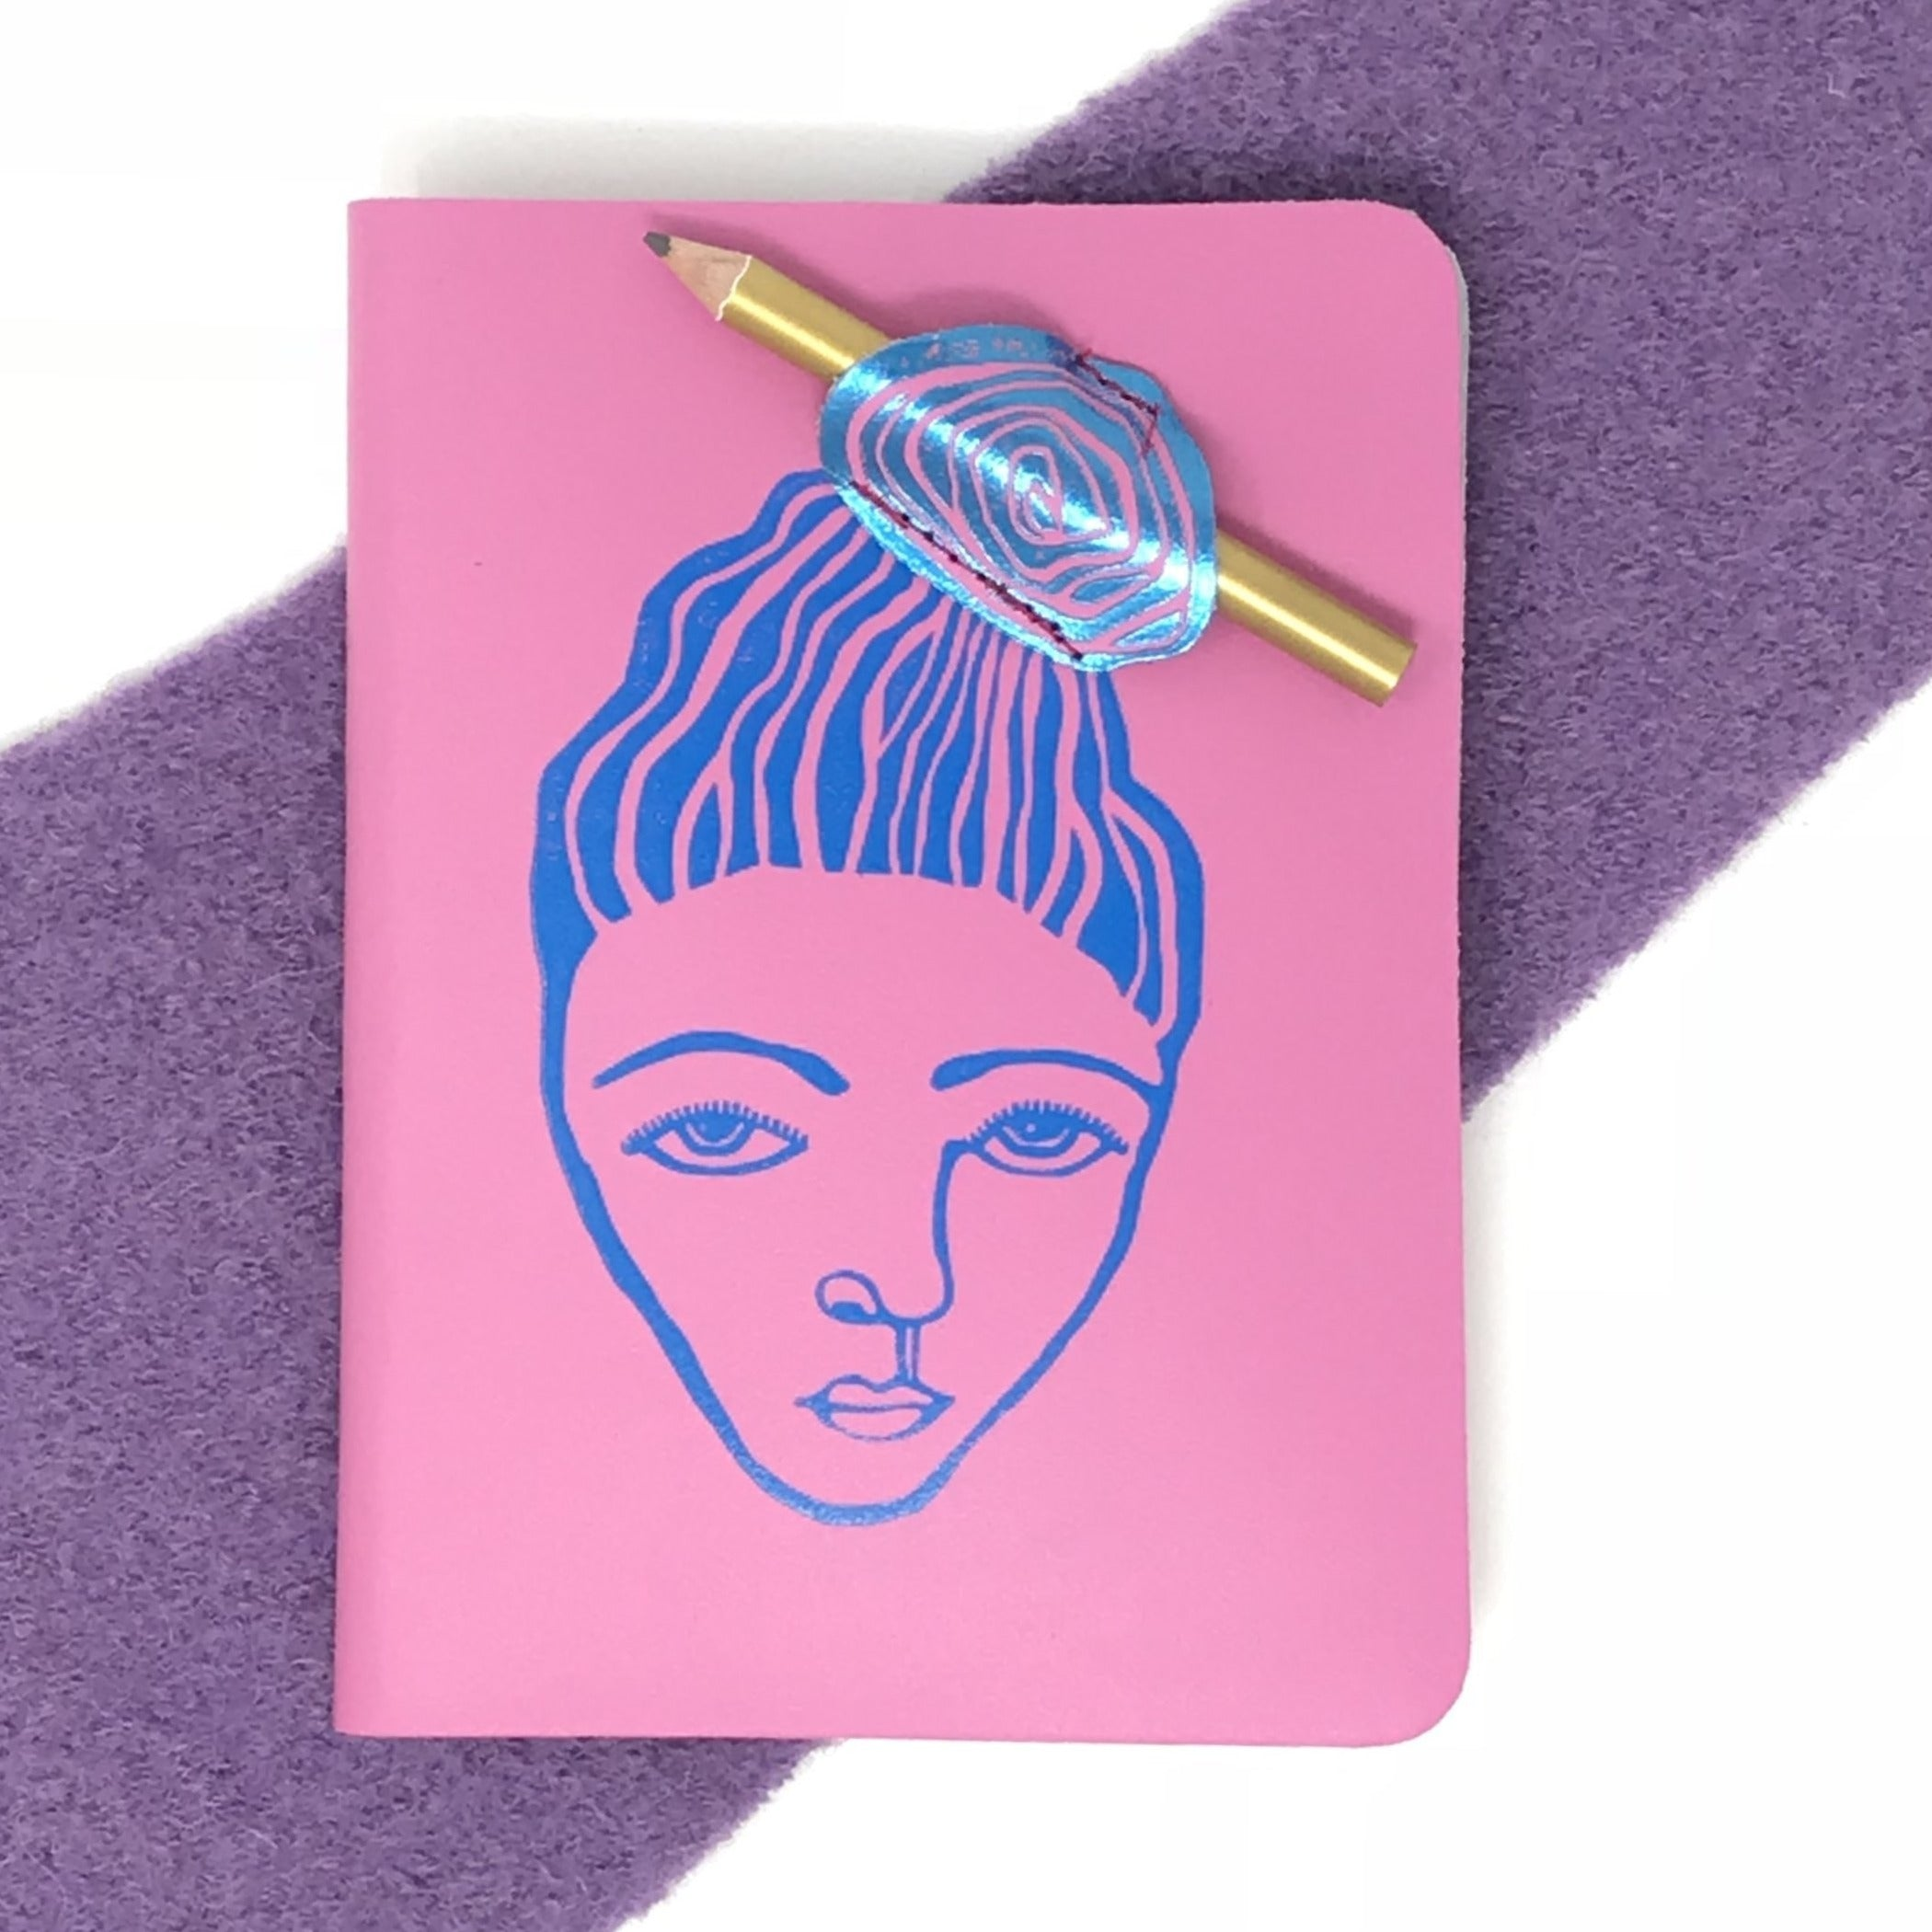 Girl Messy Bun Pink Notebook with Pencil - Luvit!